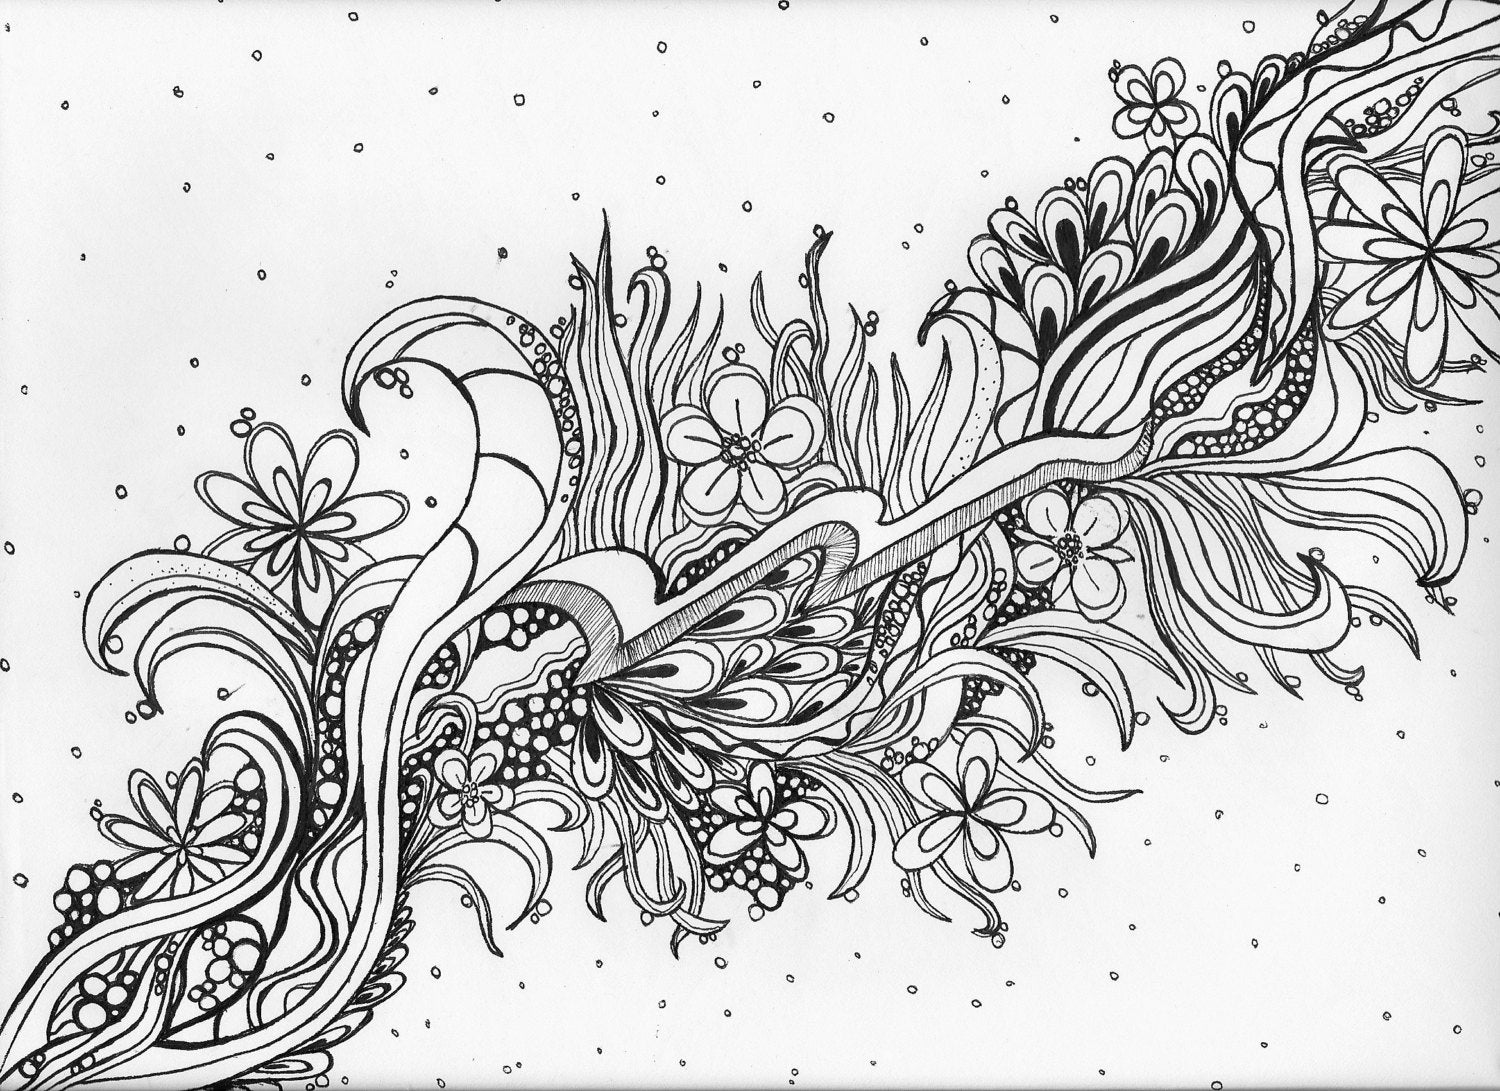 zen art coloring pages zen antistress abstract pattern inspired anti stress coloring art zen pages